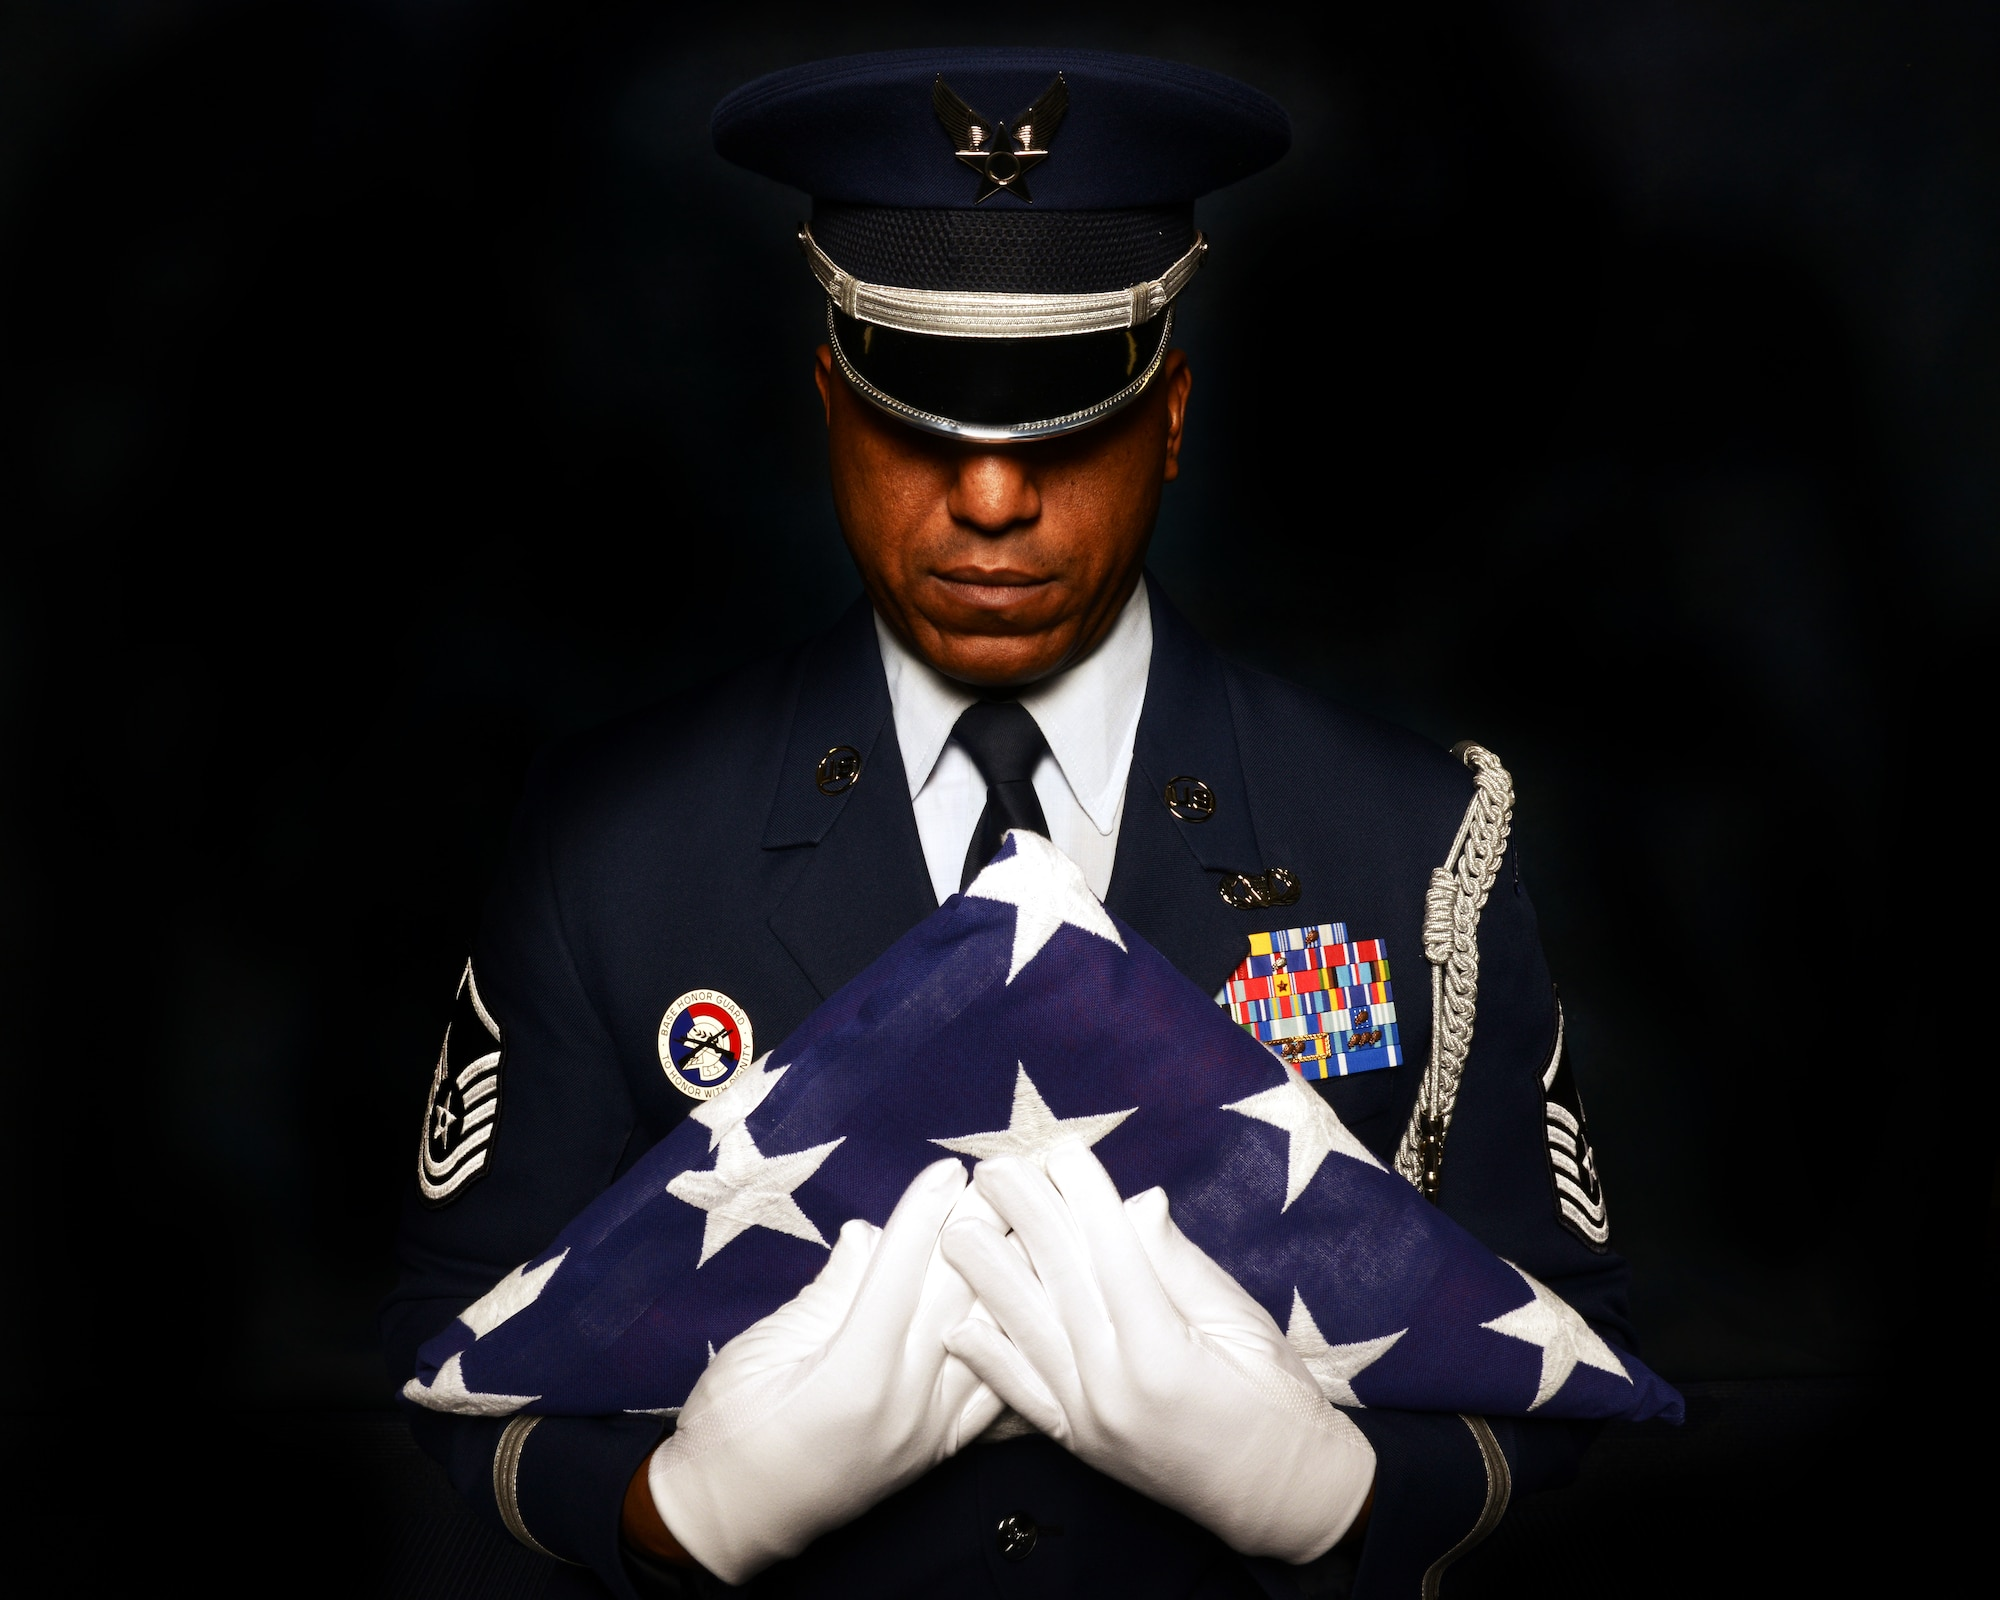 Master Sgt. Andre Moore clutches an American Flag to his chest during a studio portrait Oct. 28, 2014, at Aviano Air base, Italy. Moore served with the U.S. Air Force Honor Guard for more than four years and uses his knowledge to develop Airmen at the base honor guard level. Moor is the Aviano Base Honor Guard superintendent. (U.S. Air Force photo/Airman 1st Class Ryan Conroy)